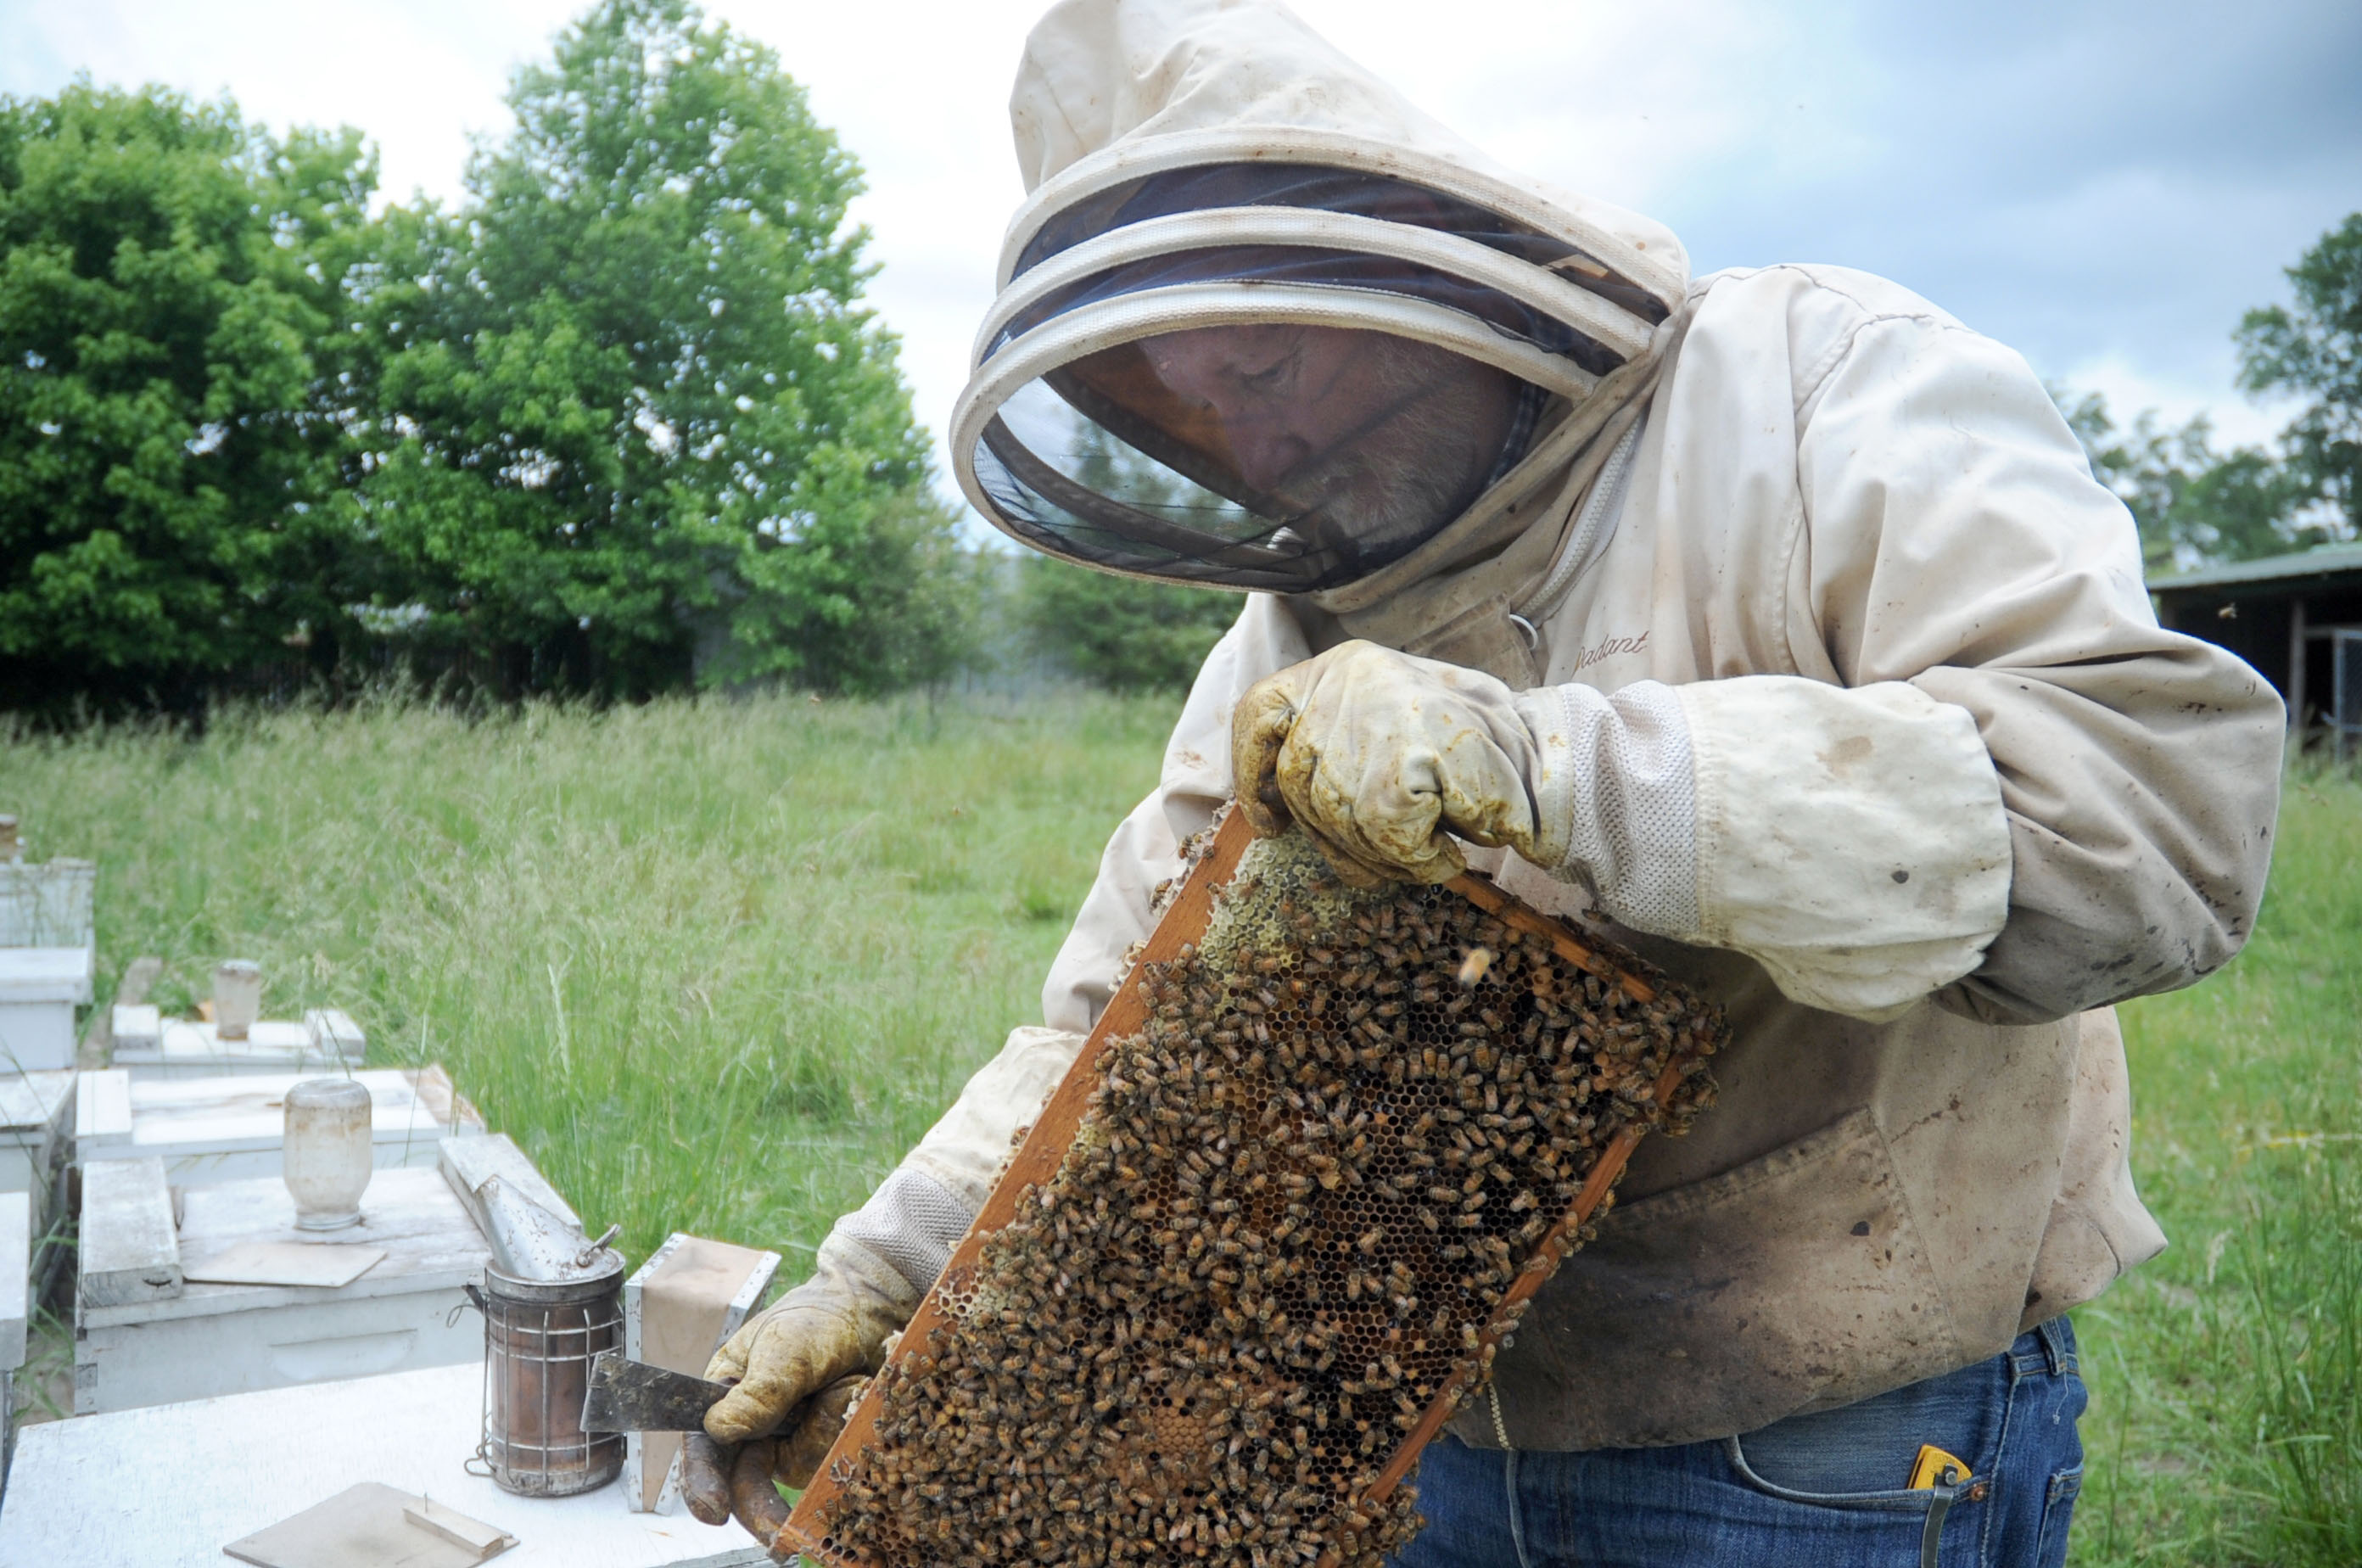 Beekeeper Alan Clingenpeel shows the inside of a bee hive in his apiary at his home on May 23, 2014 in Pearcy, Ark.